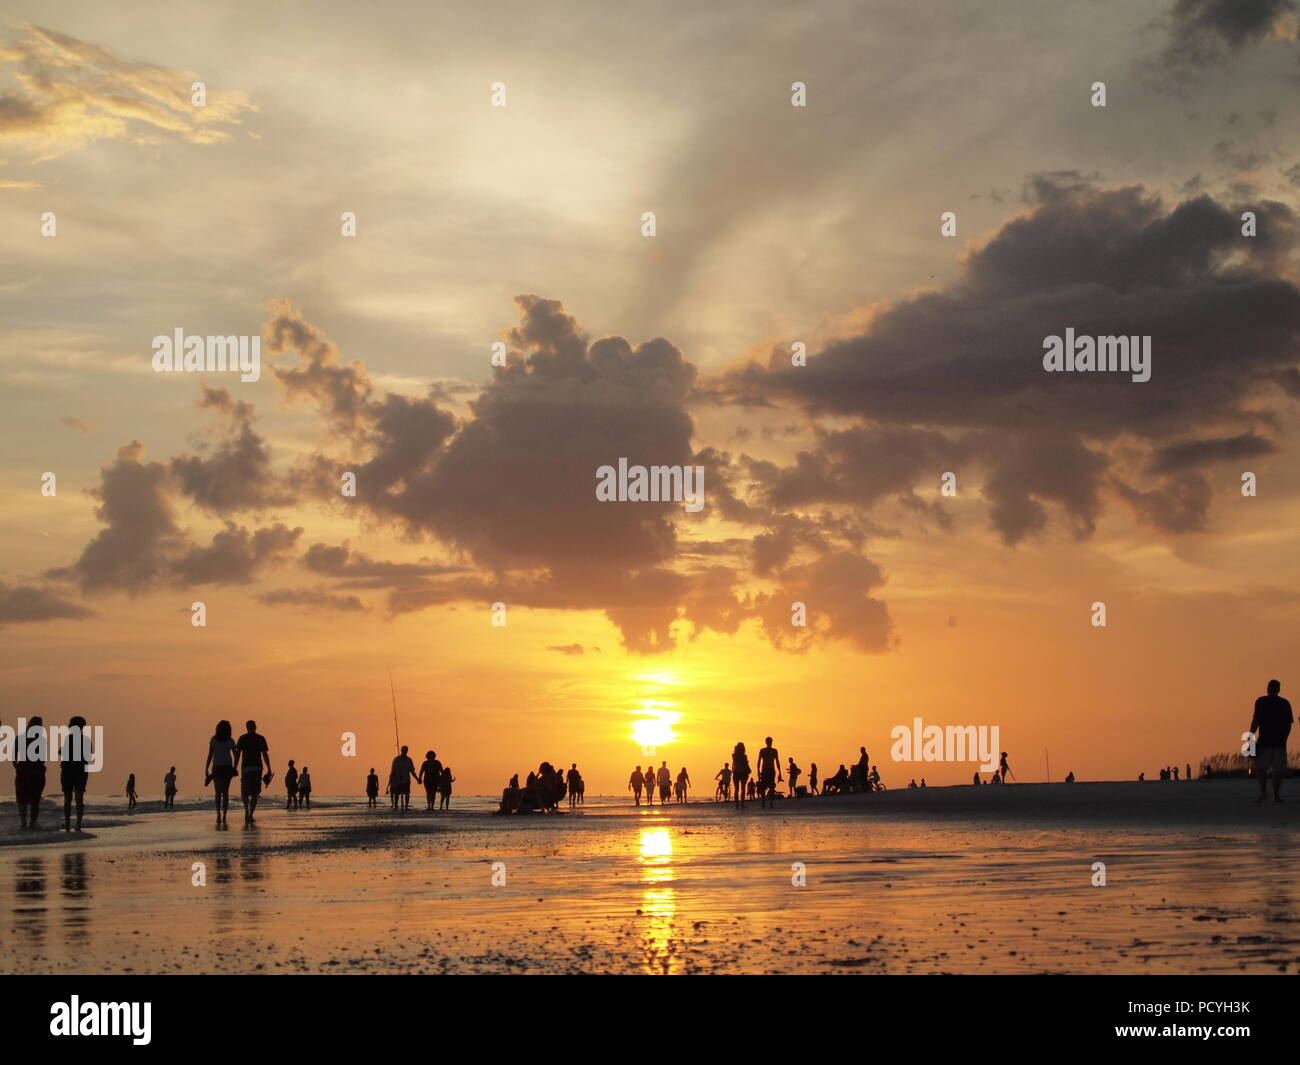 people walking on beach at sunset. low angle view with light effect silhouette of people enjoying nature - Stock Image